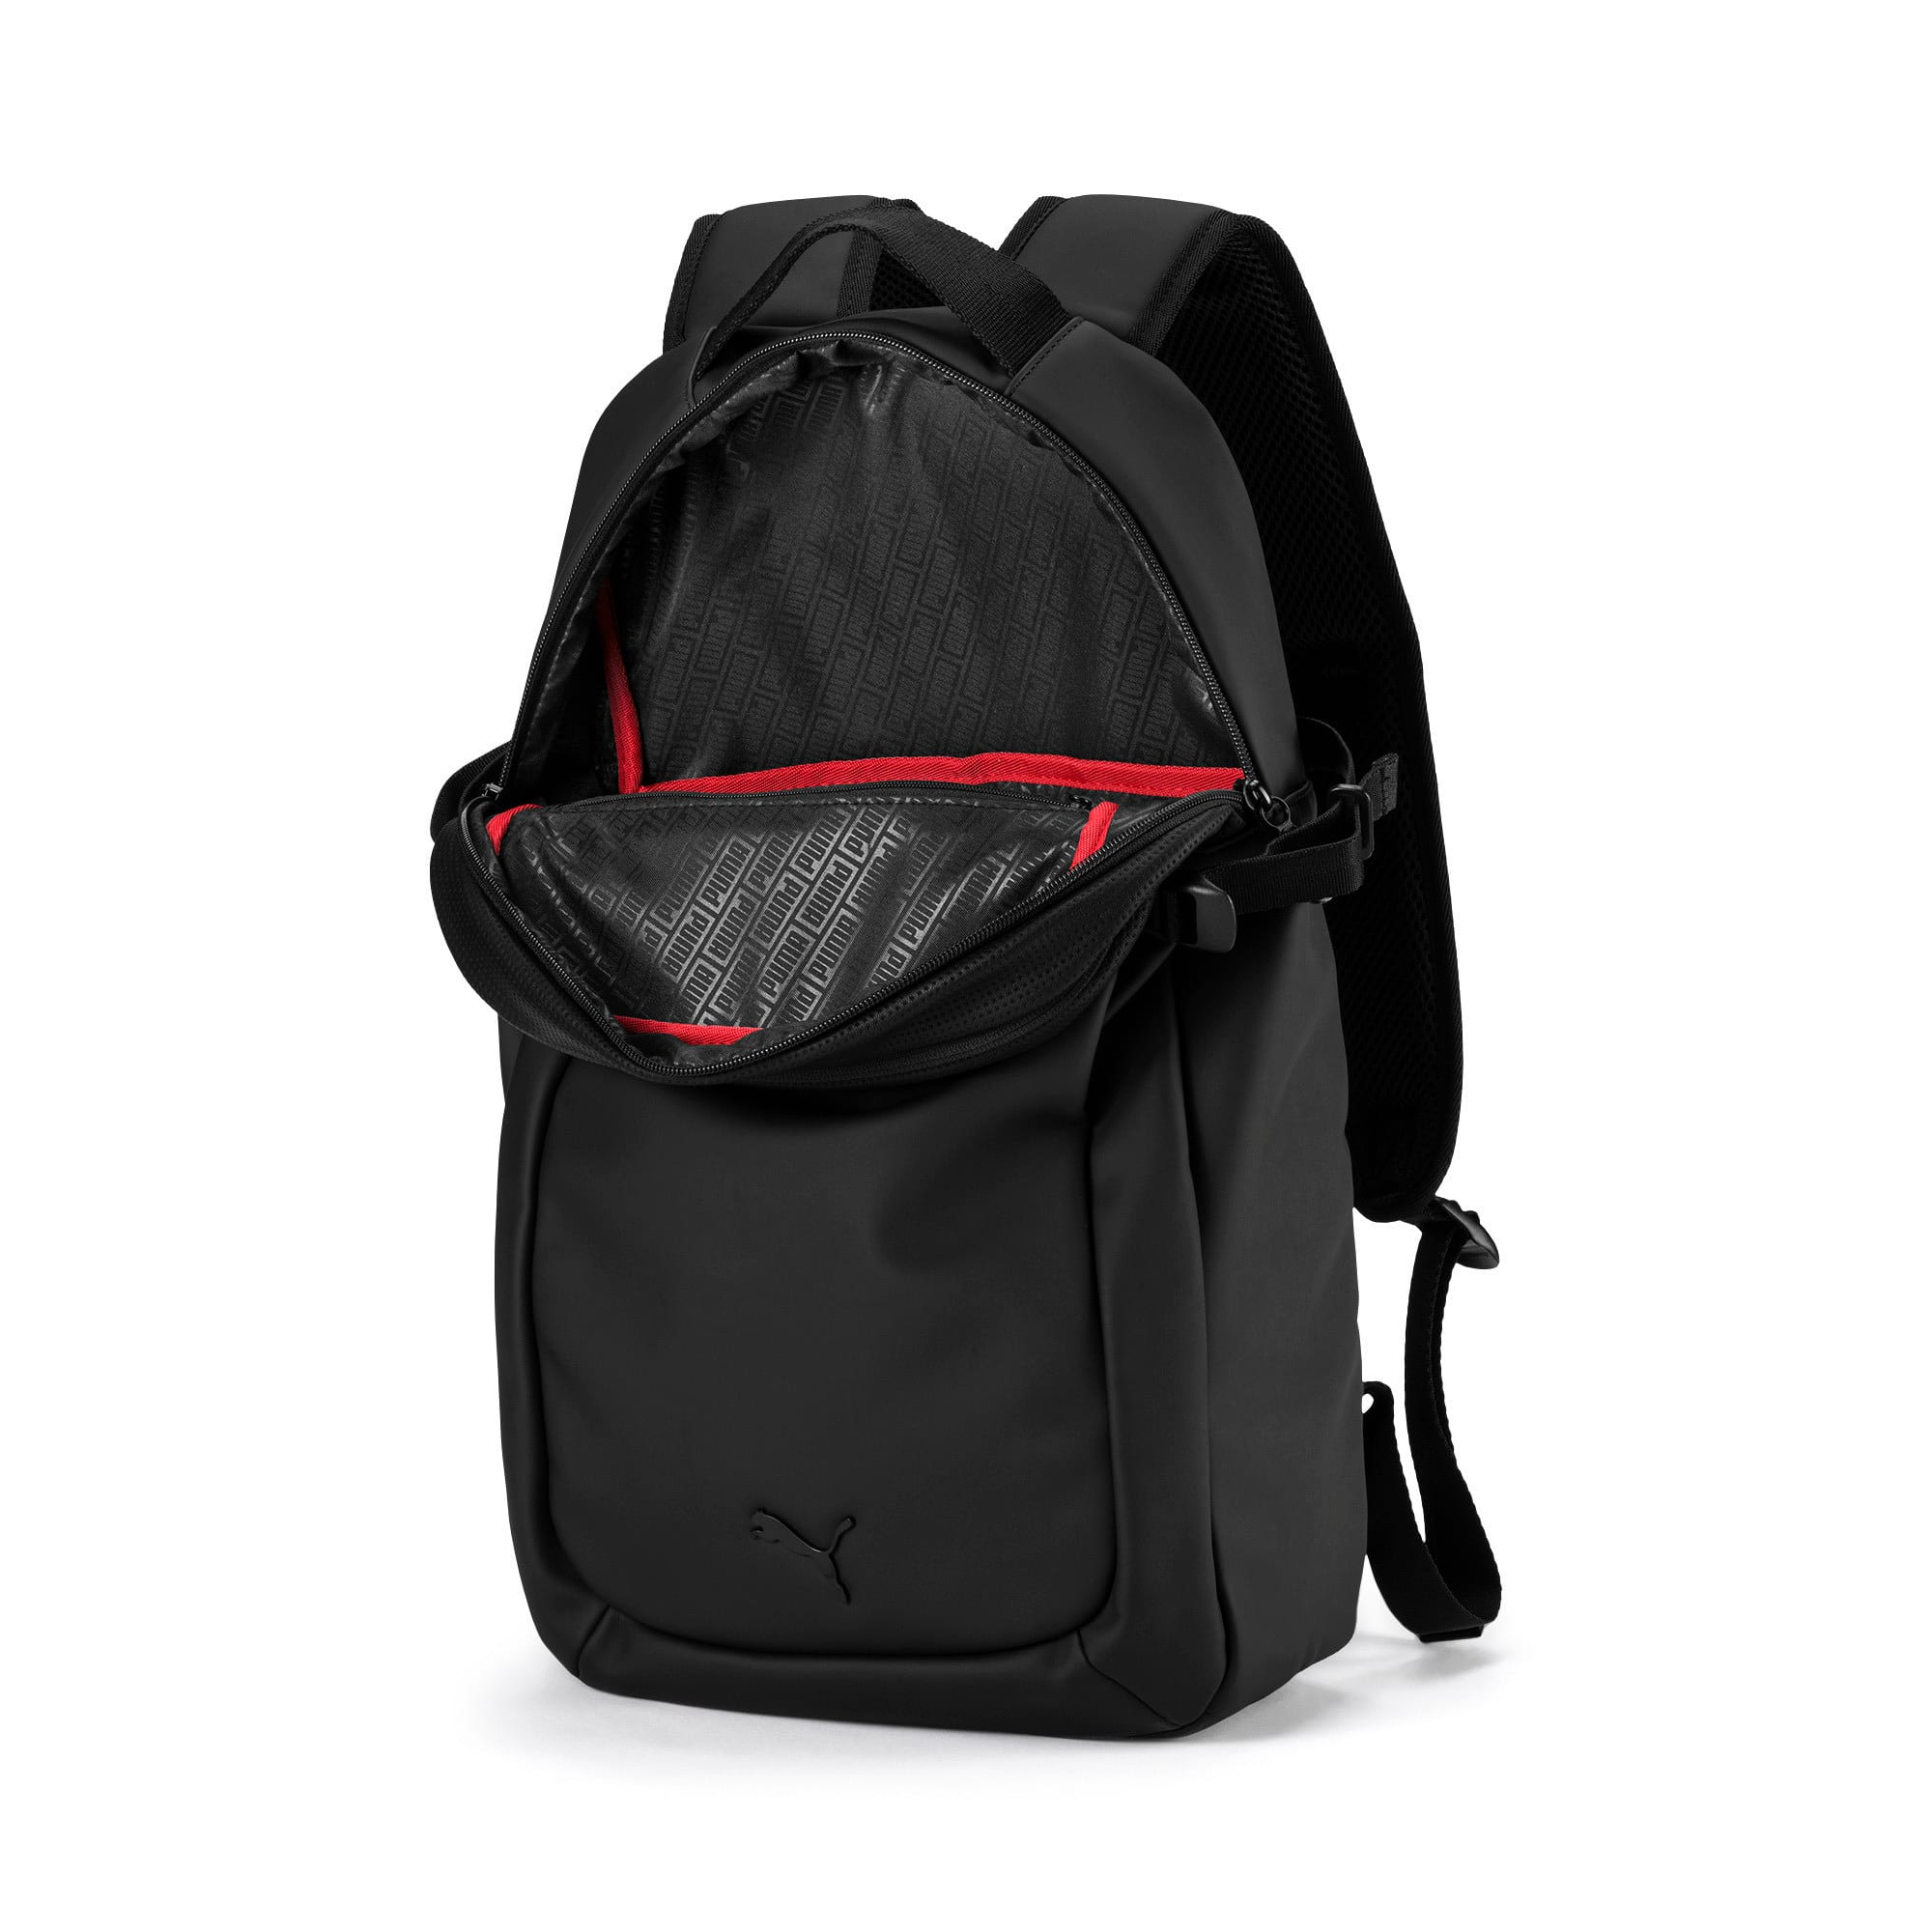 Thumbnail 4 of Ferrari Lifestyle Backpack, Puma Black, medium-IND